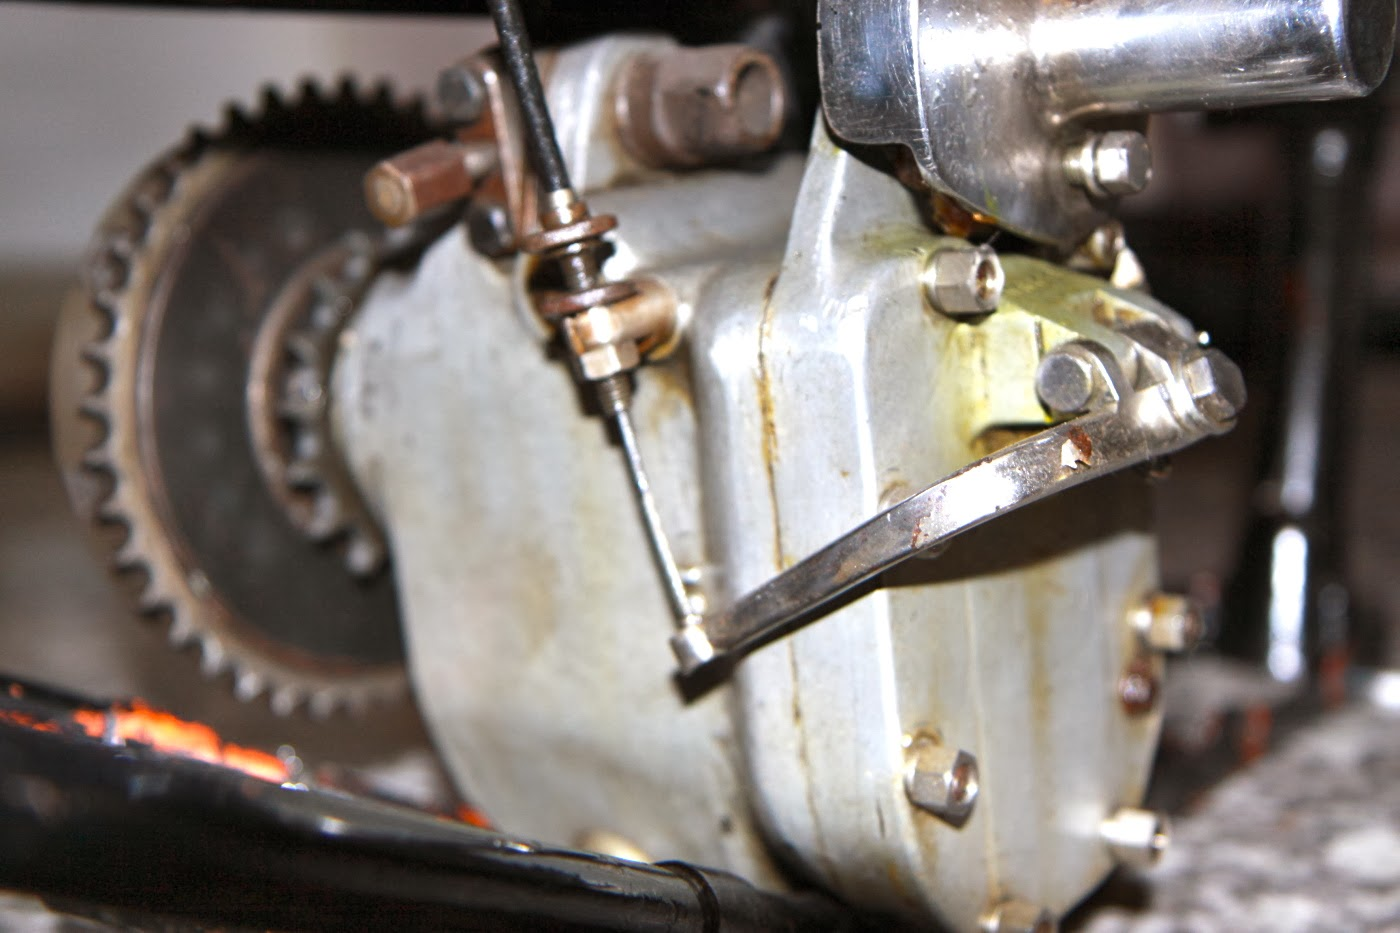 Vintage Norton Motorcycles 1930 Type Ns Gearboxes Gear Box Of Motorcycle Sg We Mentioned In Our Recent Posting About Sturmey Archer Footchange Mechanisms That The Three Speed Gearbox Fitted To Marcels Tt Spec